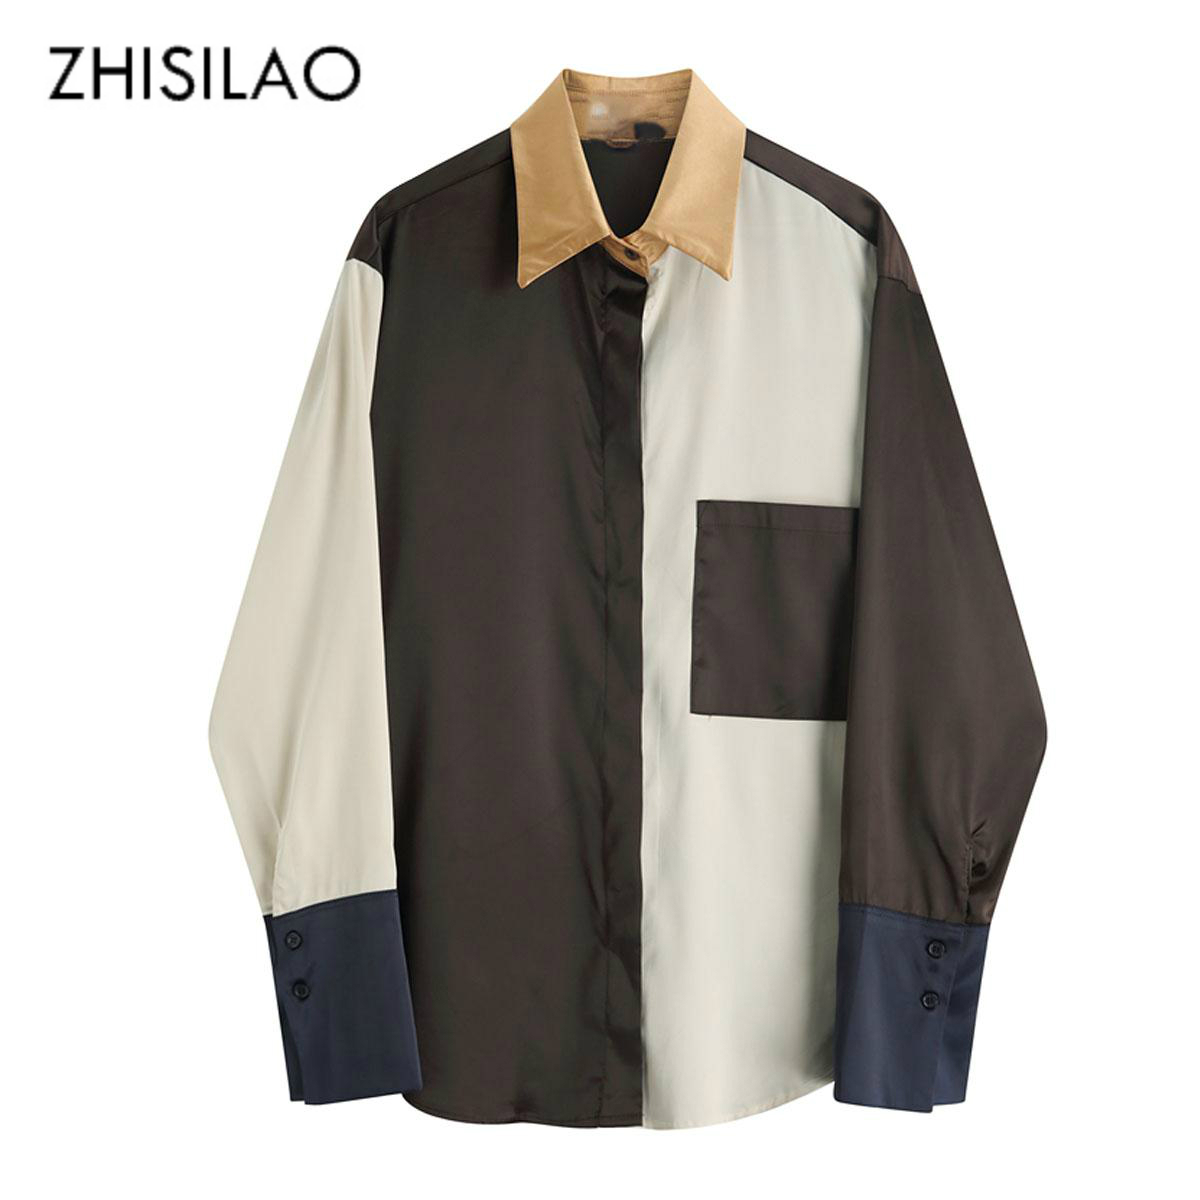 Satin Patchwork Vintage Blouse Women Elegant Retro Spring Women Tops and Blouse Casual Long Sleeve Shirt Mujer 2020